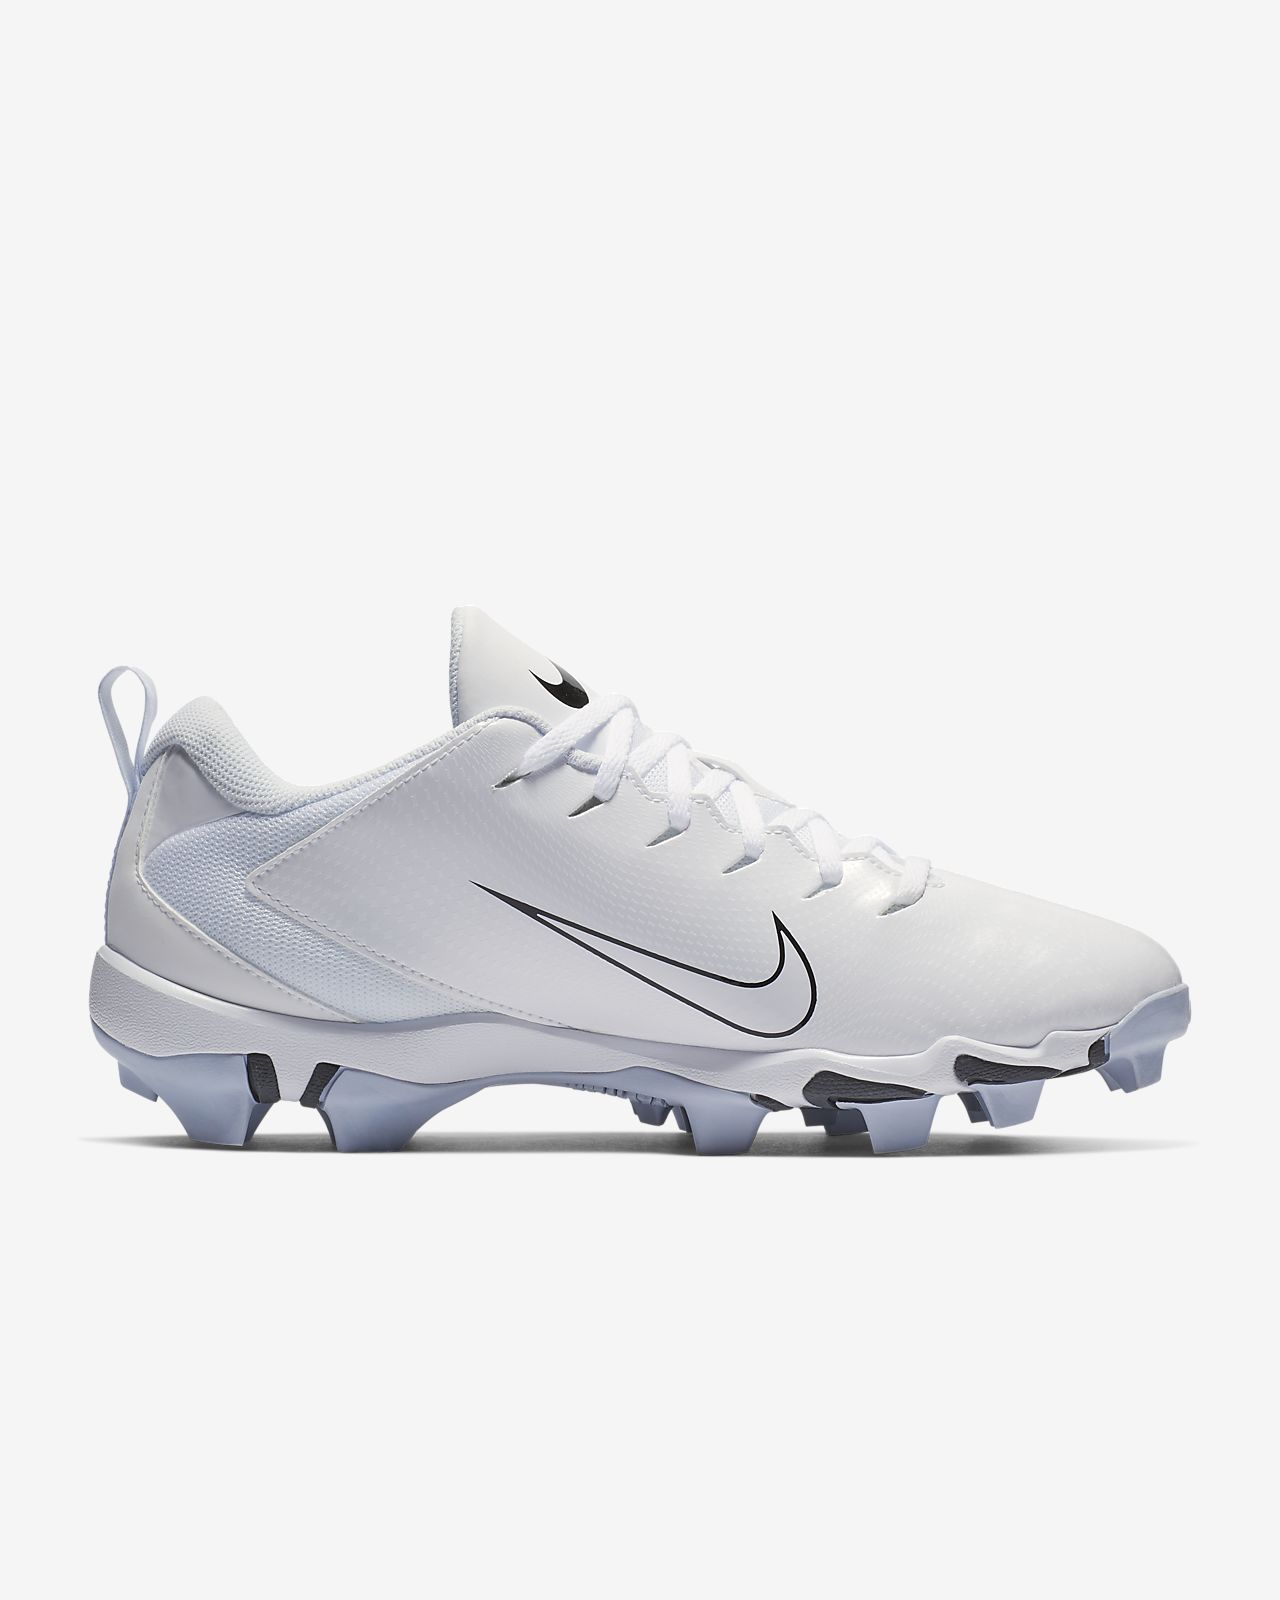 d8928b60f071 Low Resolution Nike Vapor Untouchable Shark 3 Men's Football Cleat Nike  Vapor Untouchable Shark 3 Men's Football Cleat